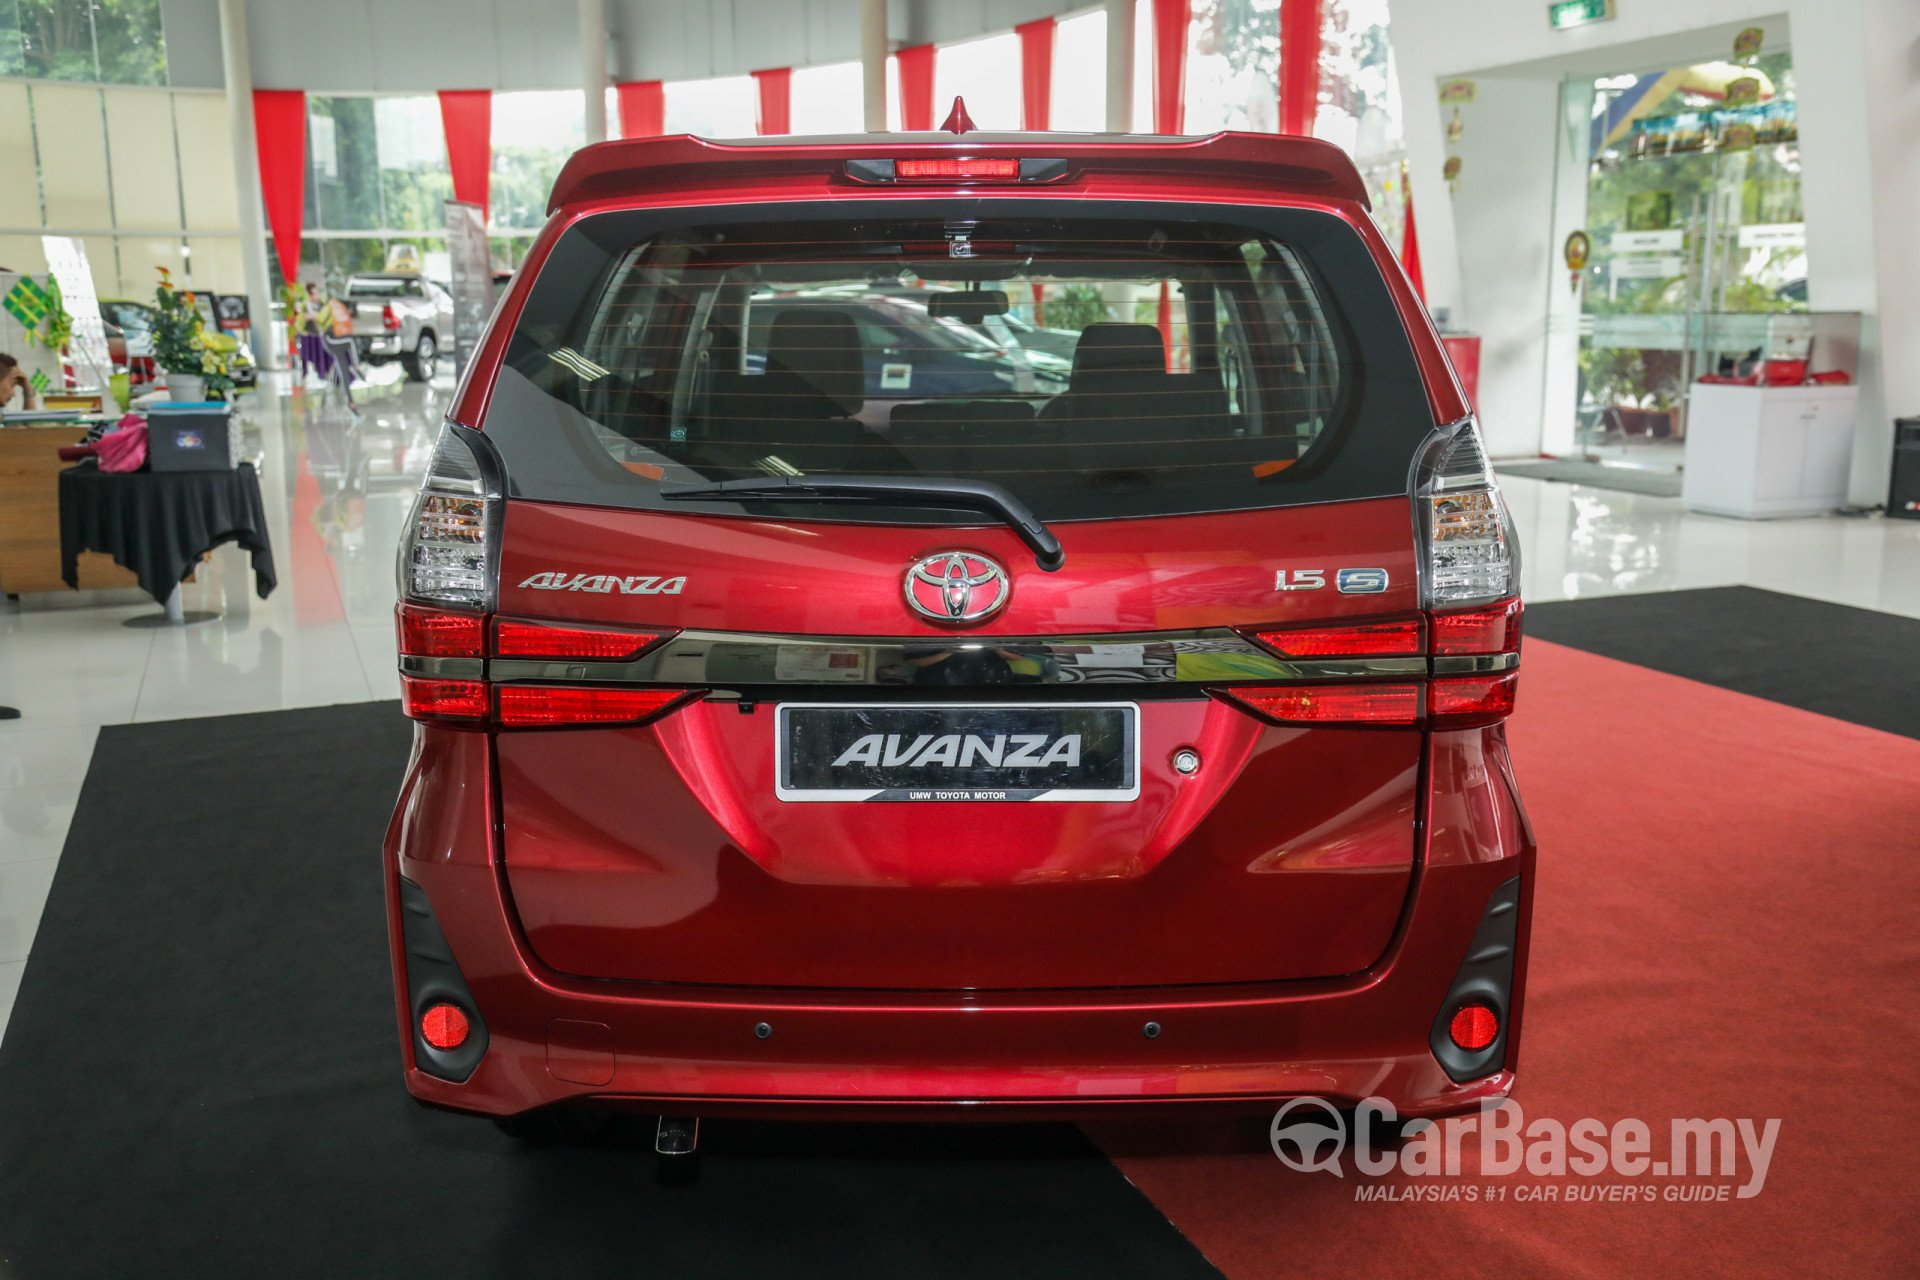 Toyota Avanza F654 Facelift (2019) Exterior Image #56832 in